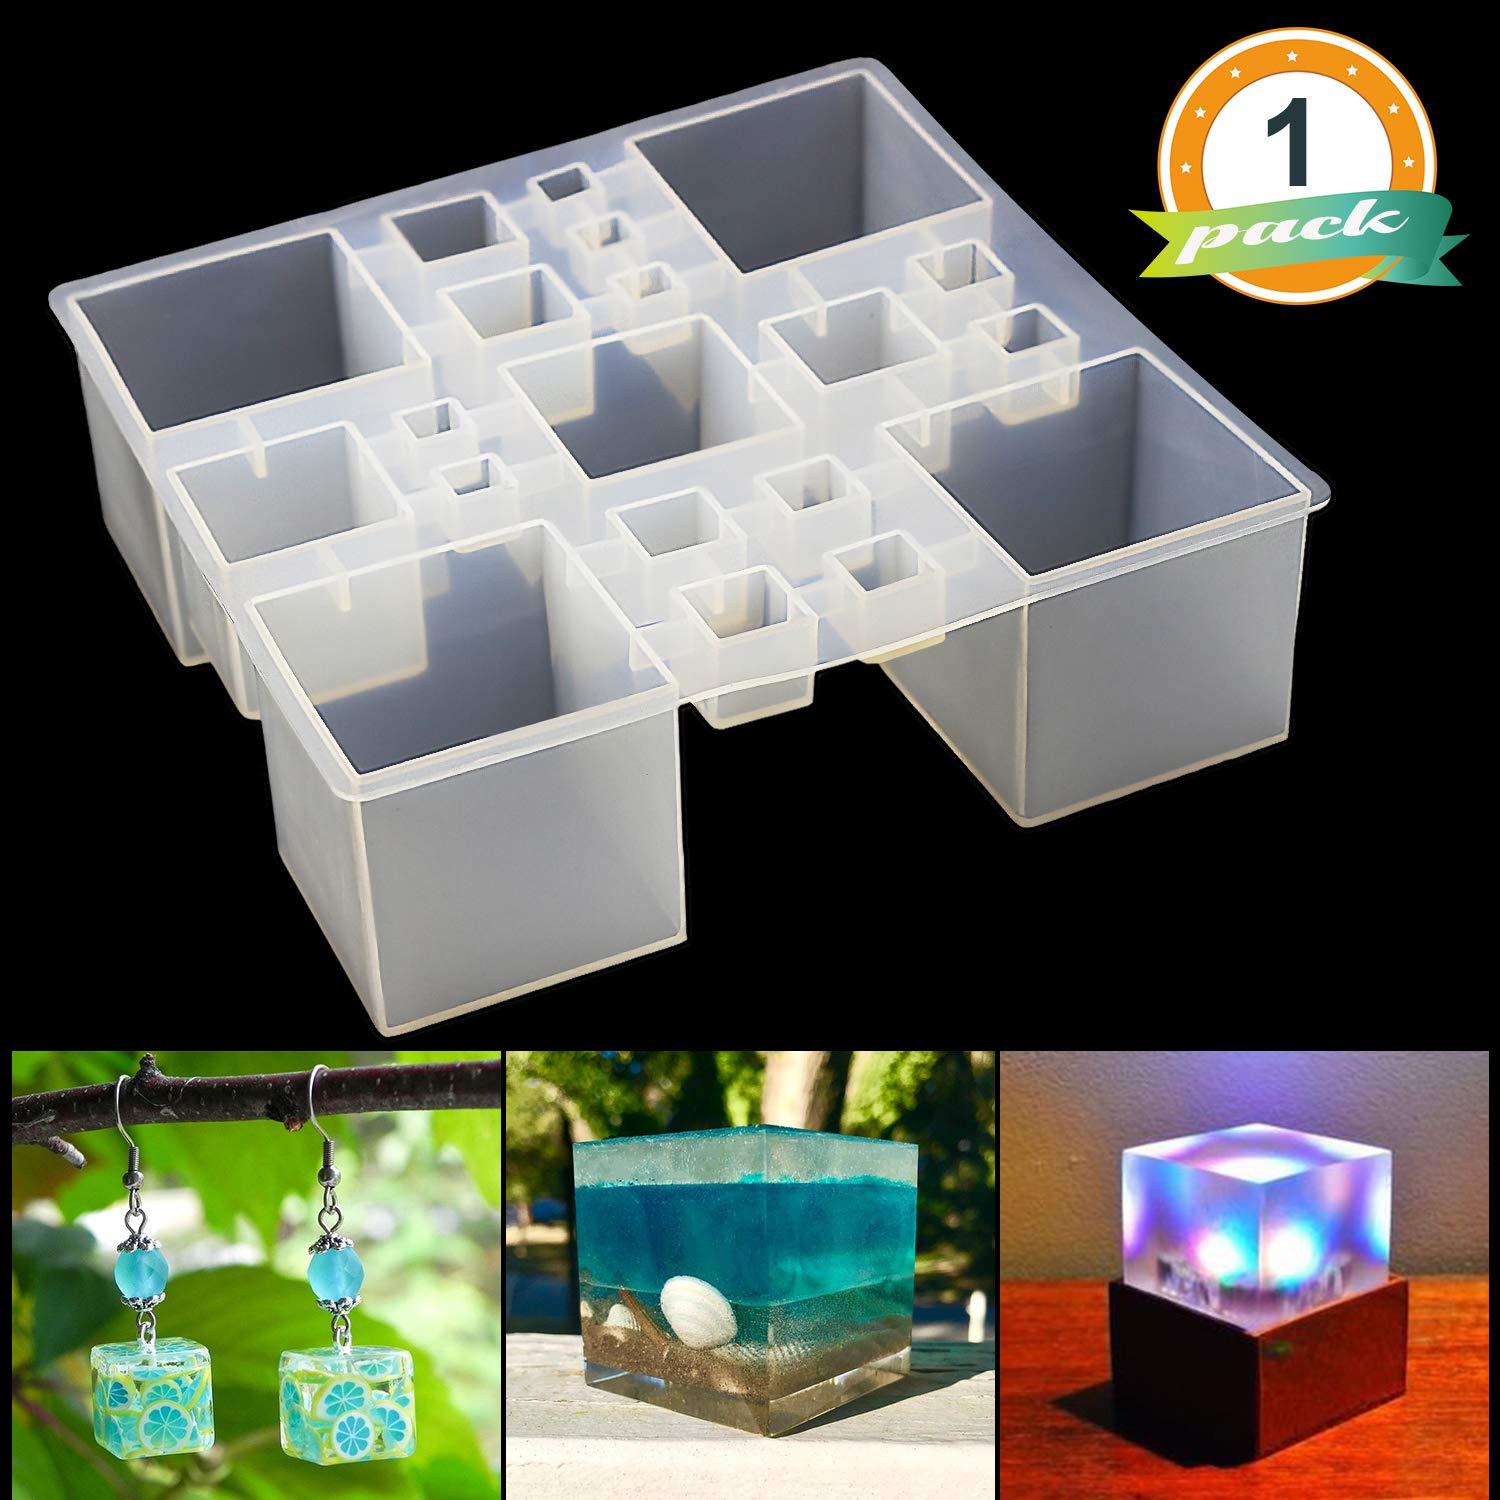 Square Resin Silicone Mold LET'S RESIN Resin Cube Molds, Silicone Molds for Resin, Epoxy Molds for Jewelry, Magic Cube, Paperweight, Specimen Making by LET'S RESIN